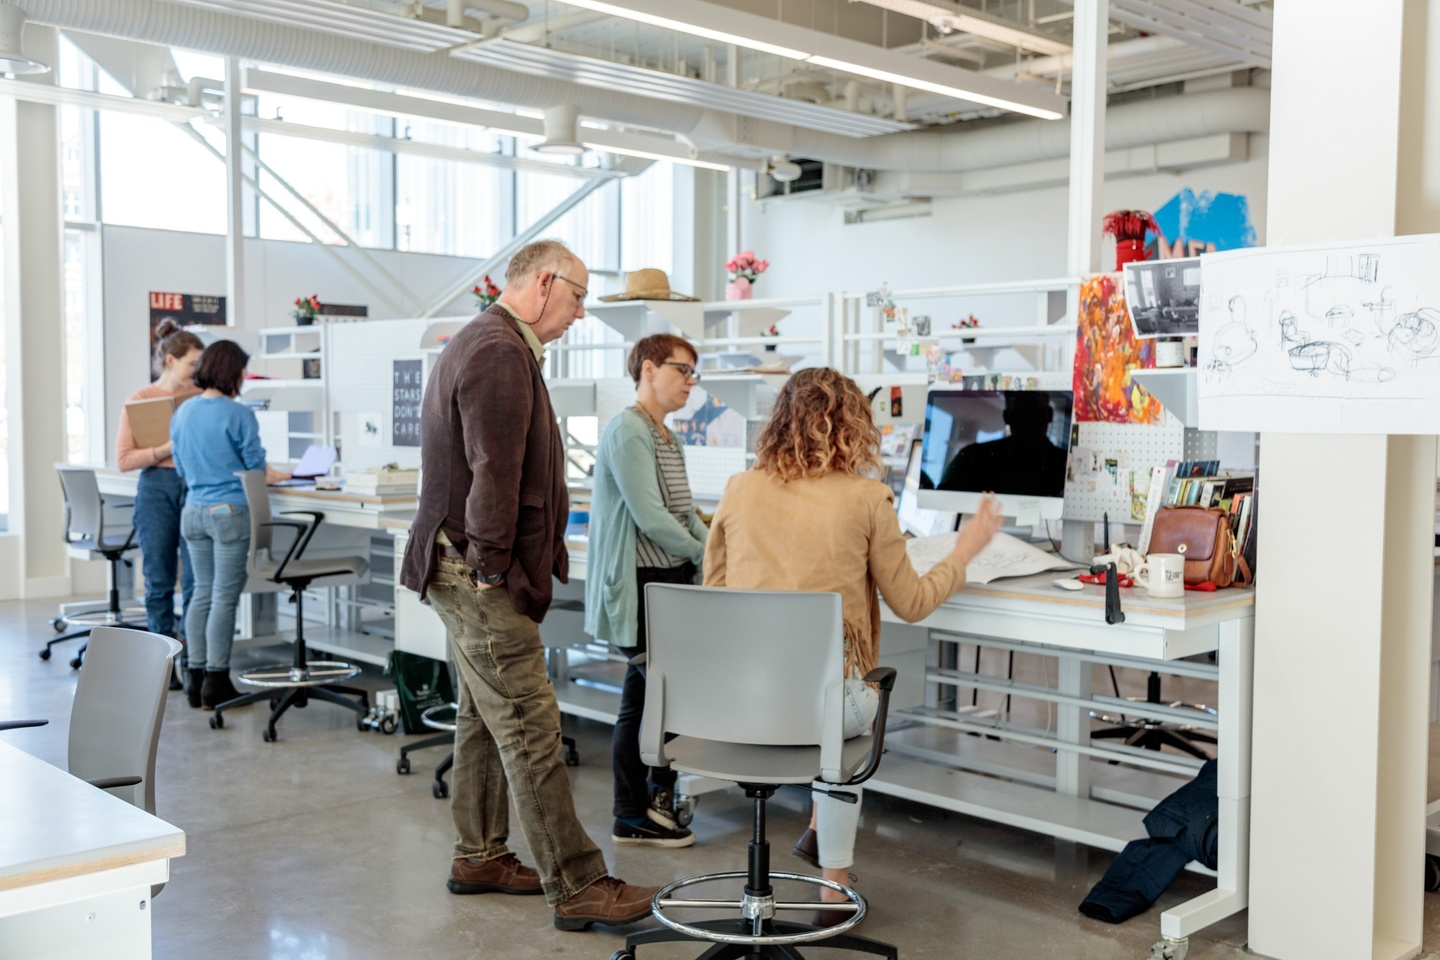 Two faculty gather next to a student at her desk, looking at work; other students are in the background of the light-filled studio space.